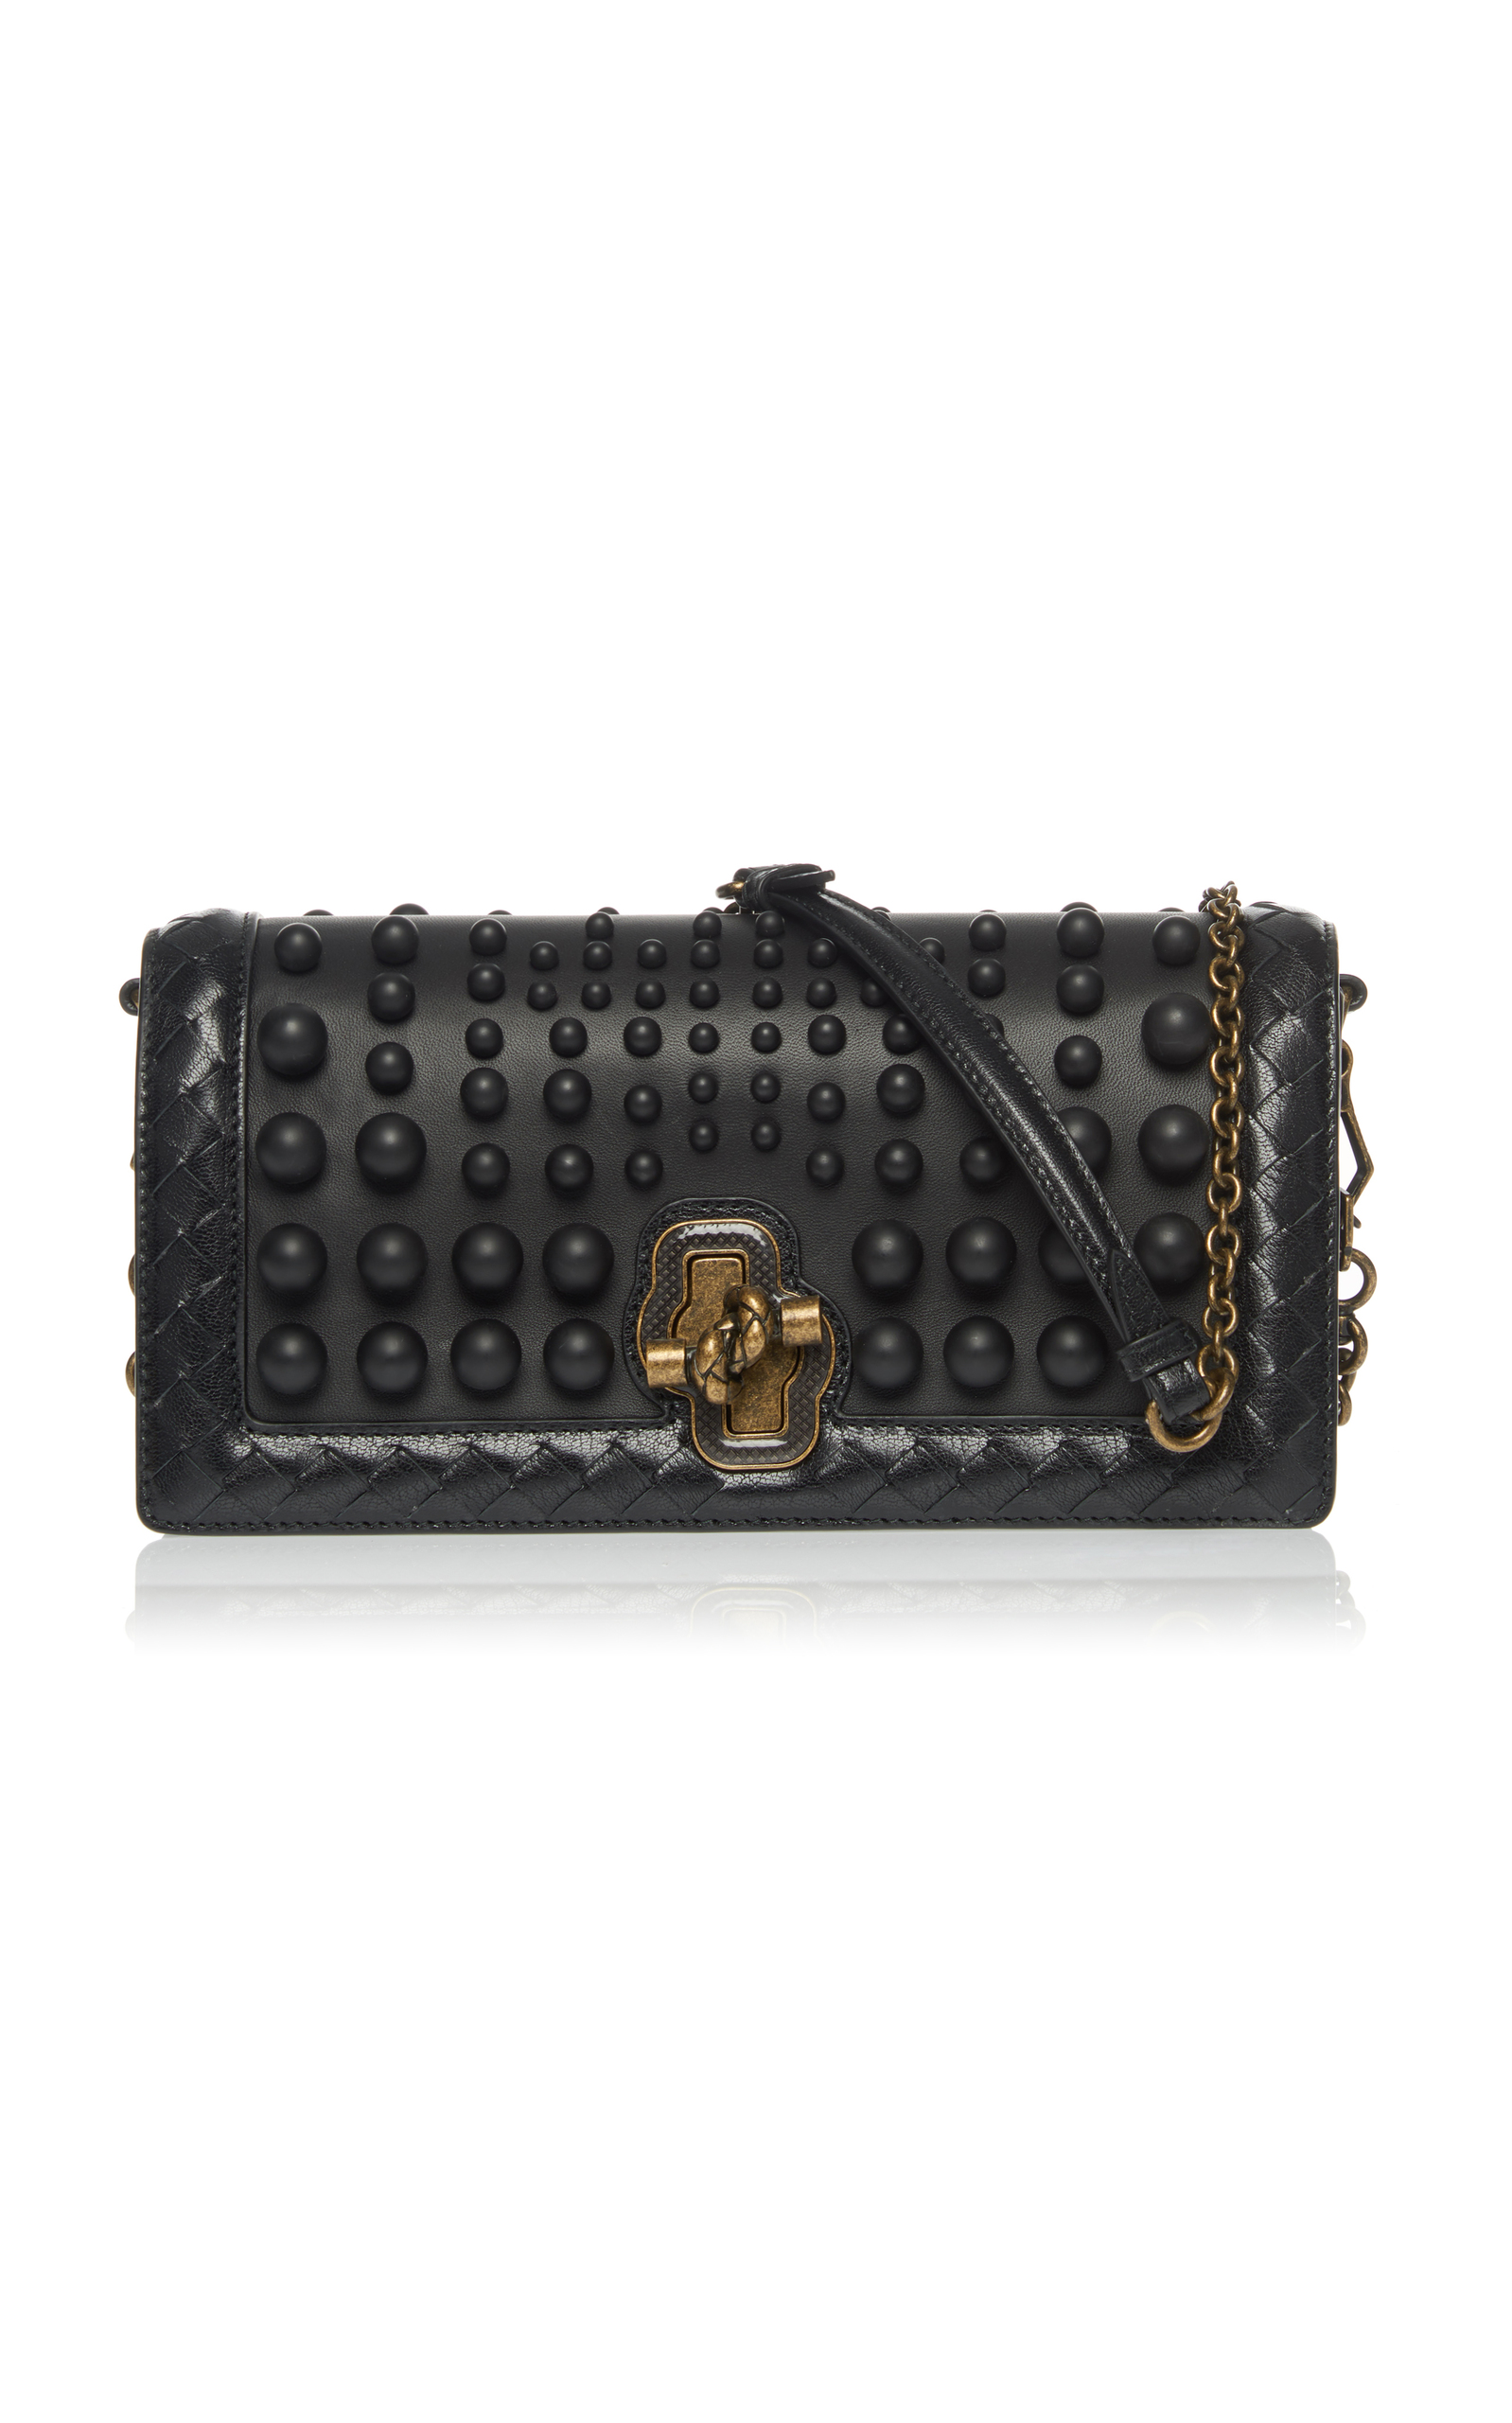 70b264d8dc5a Small Clutch Knot with Spheres by Bottega Veneta